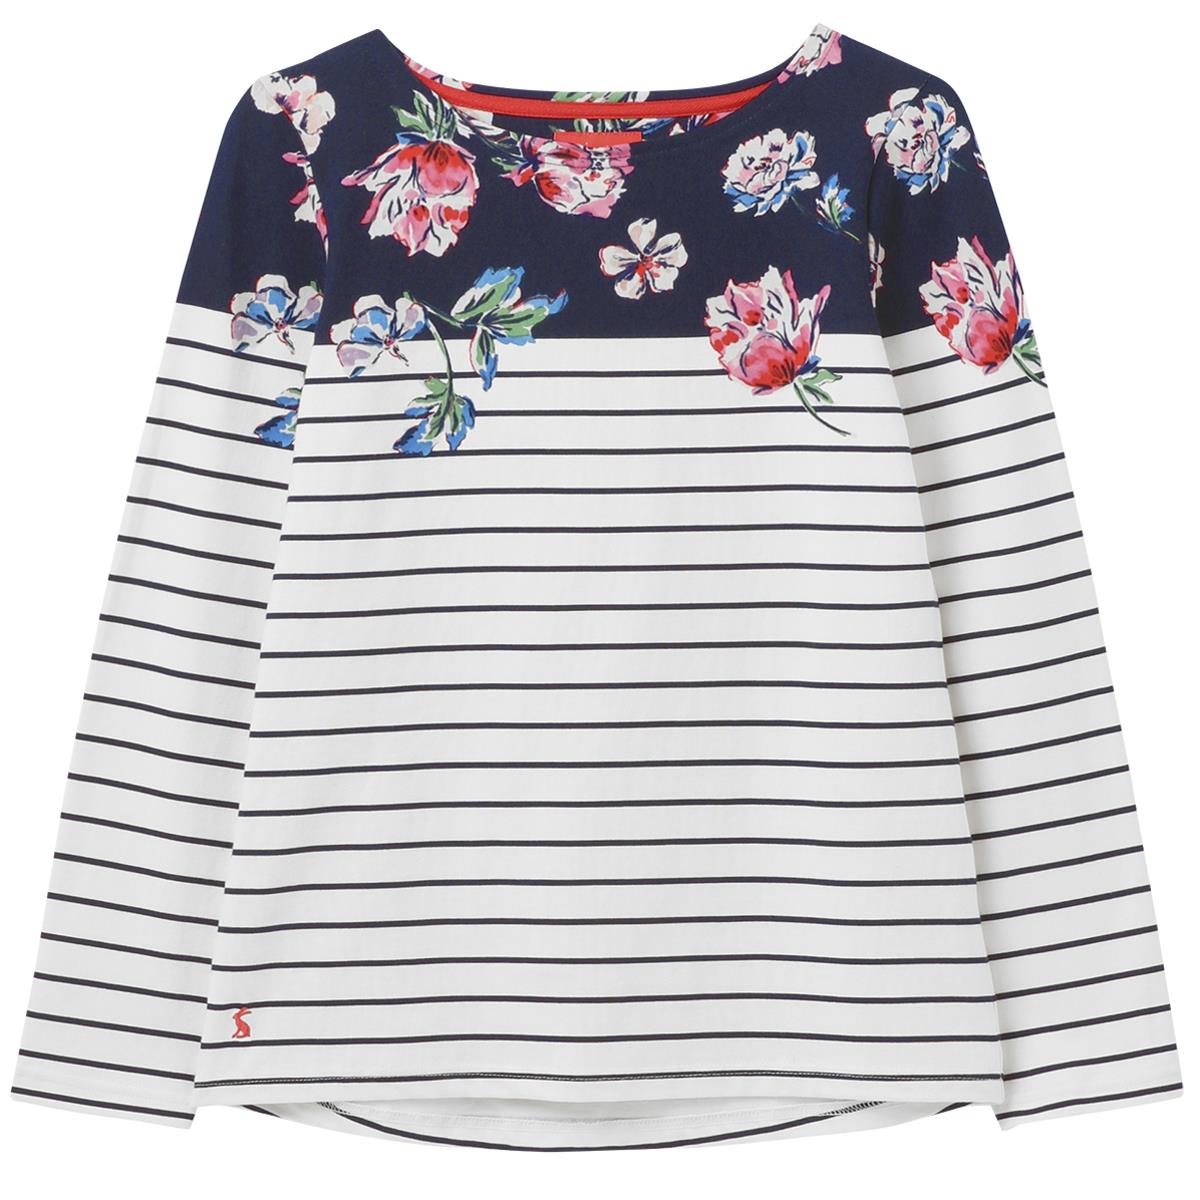 joules womens harbour print long sleeve jersey top ss21  10